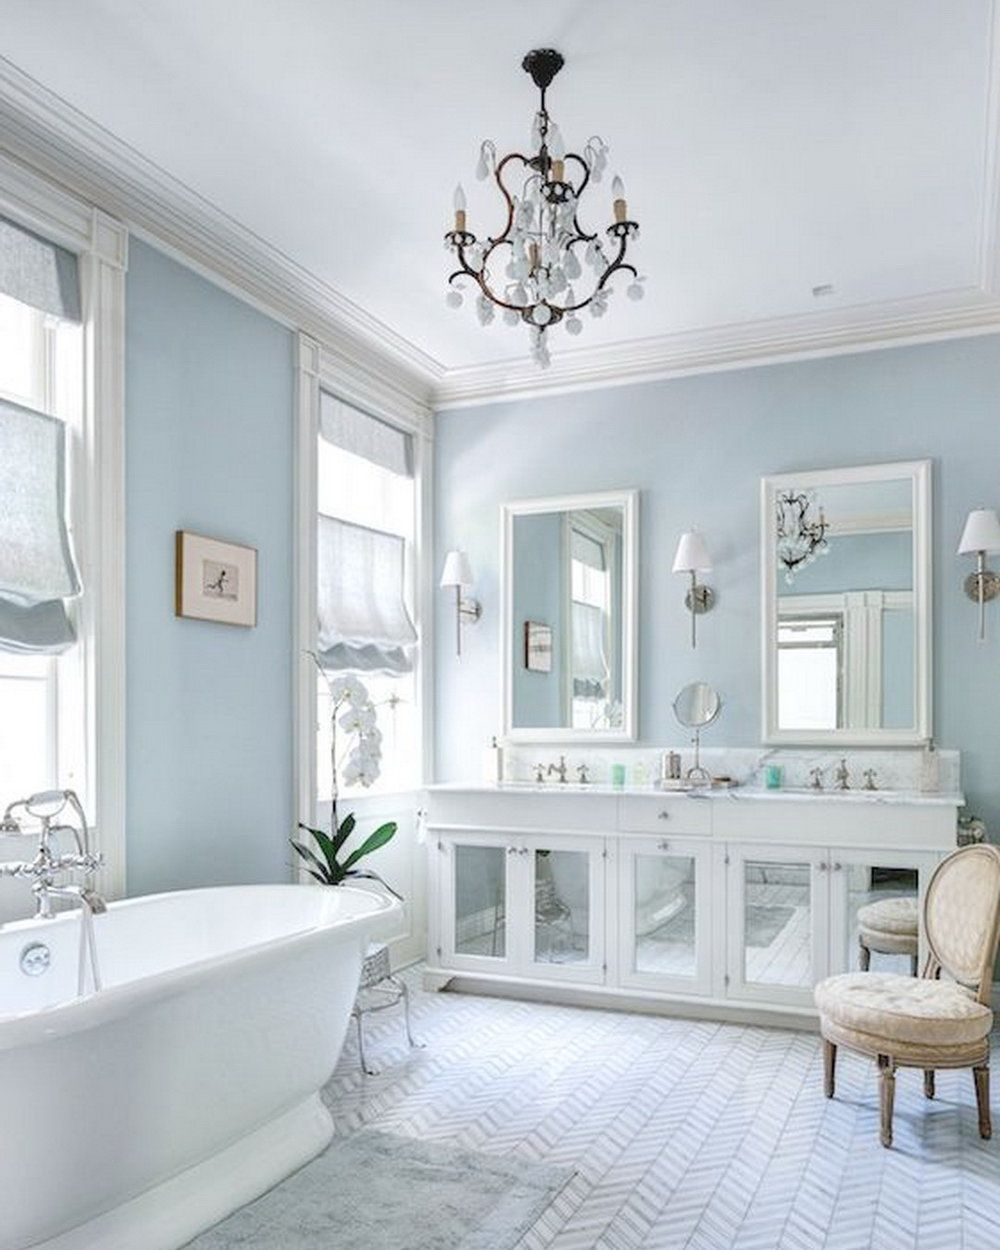 12 Luxurious Bathroom Design Ideas | Home ideas | Pinterest | French ...